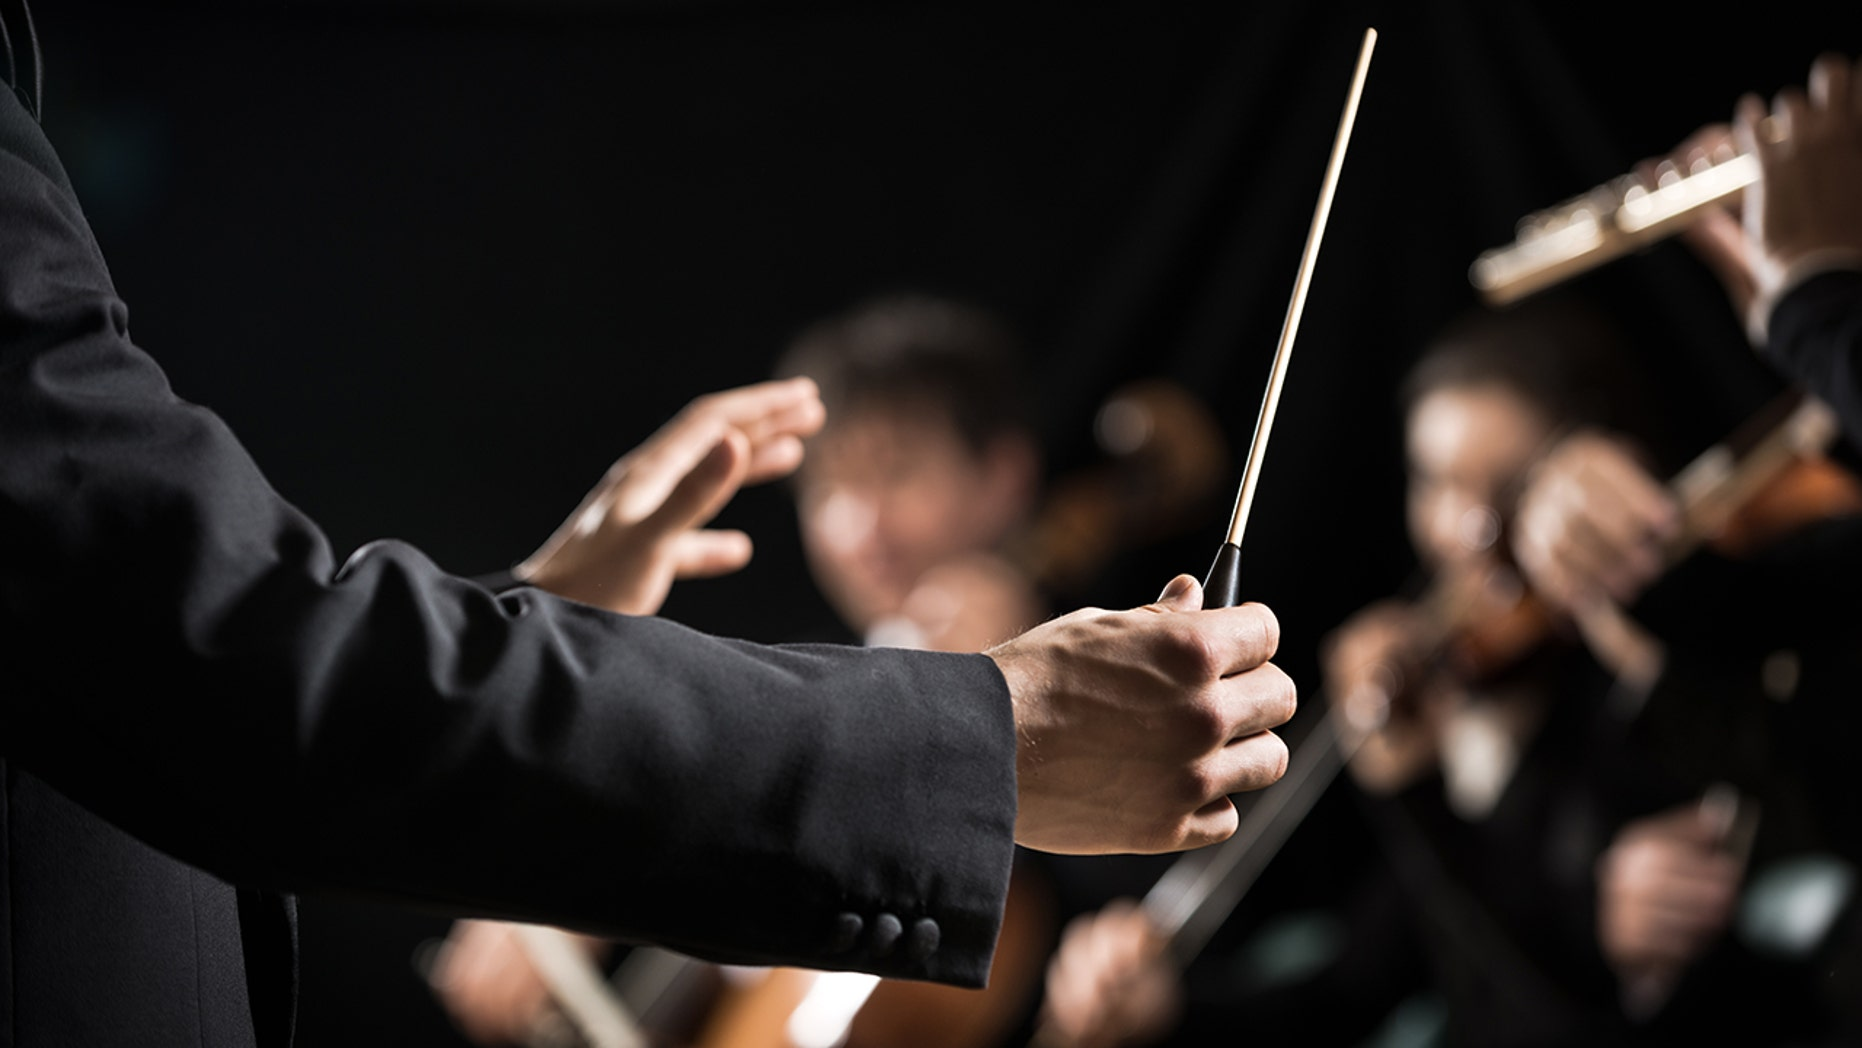 A Toronto orchestra closed after facing backlash for fat-shaming the singers